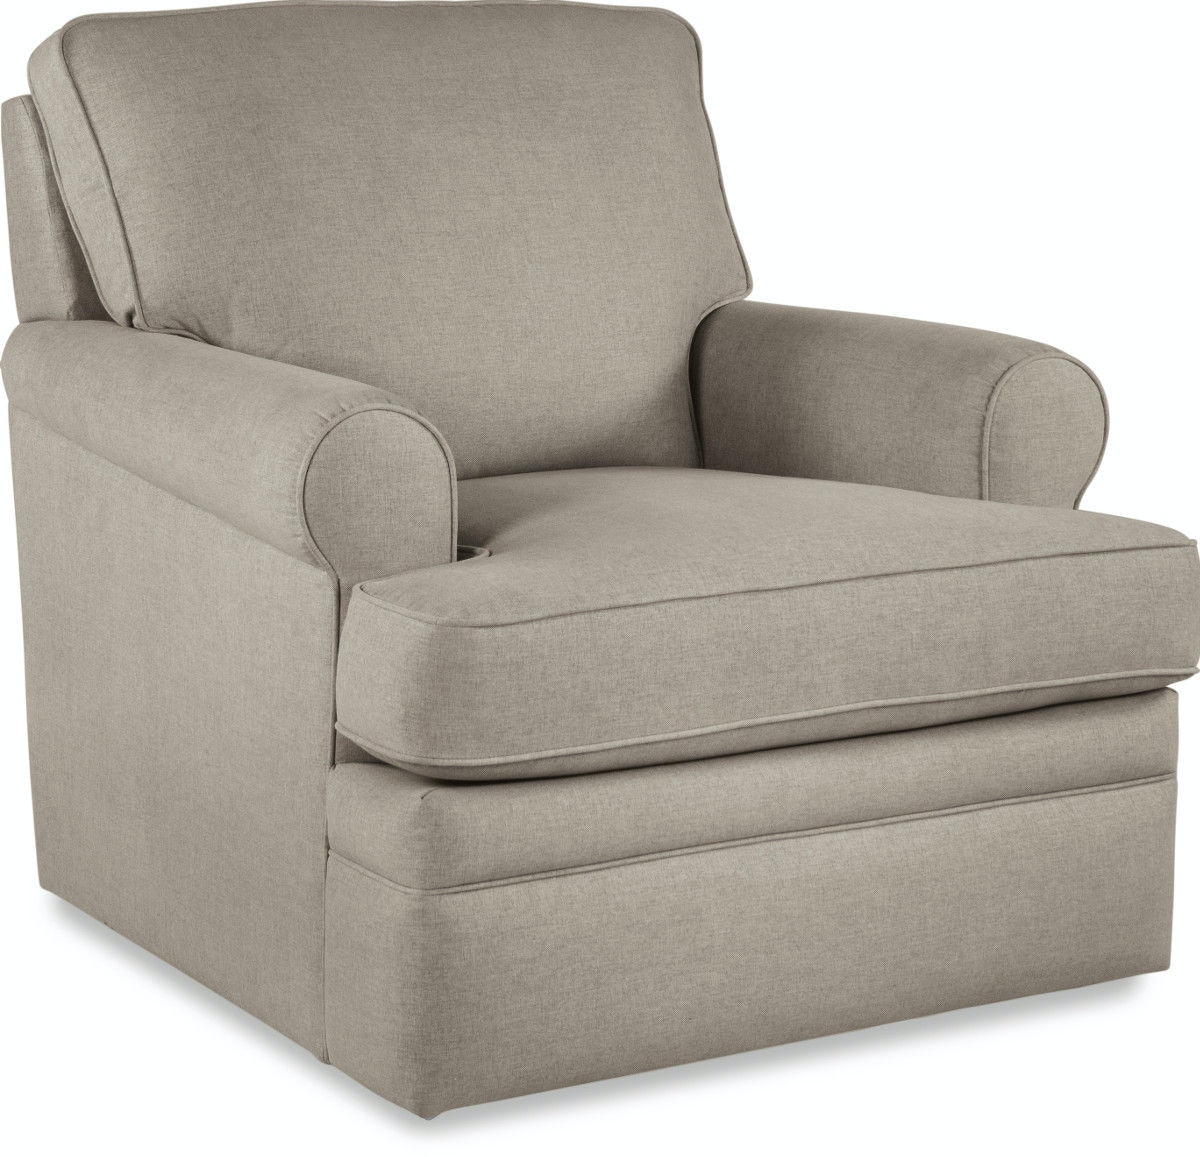 Delicieux La Z Boy® Premier Swivel Occasional Chair 215462